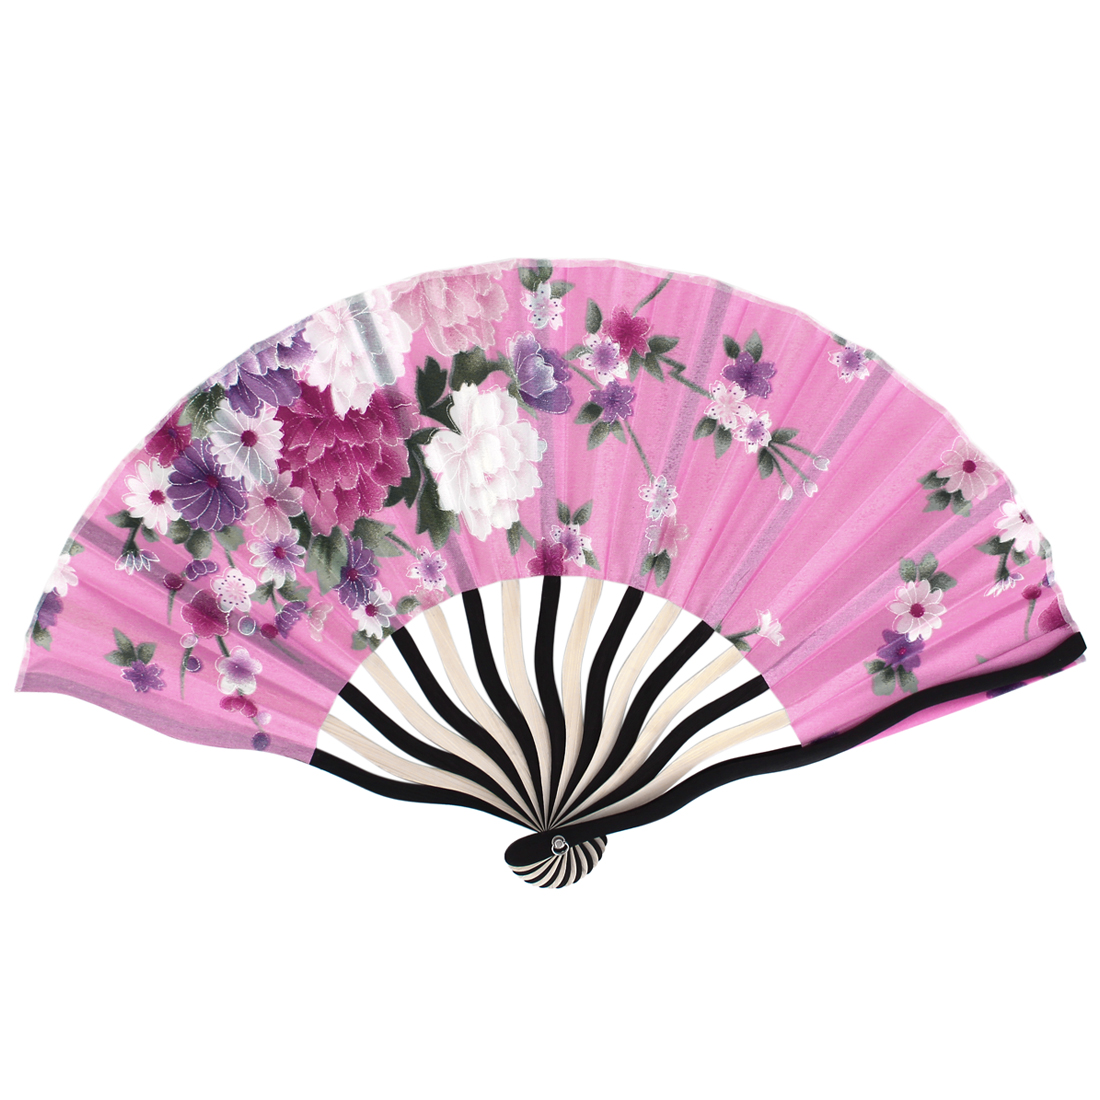 Chinese Tradition Blooming Peony Flower Print Pink Fabric Cloth Black Bamboo Frame Handheld foldable Hand Fan